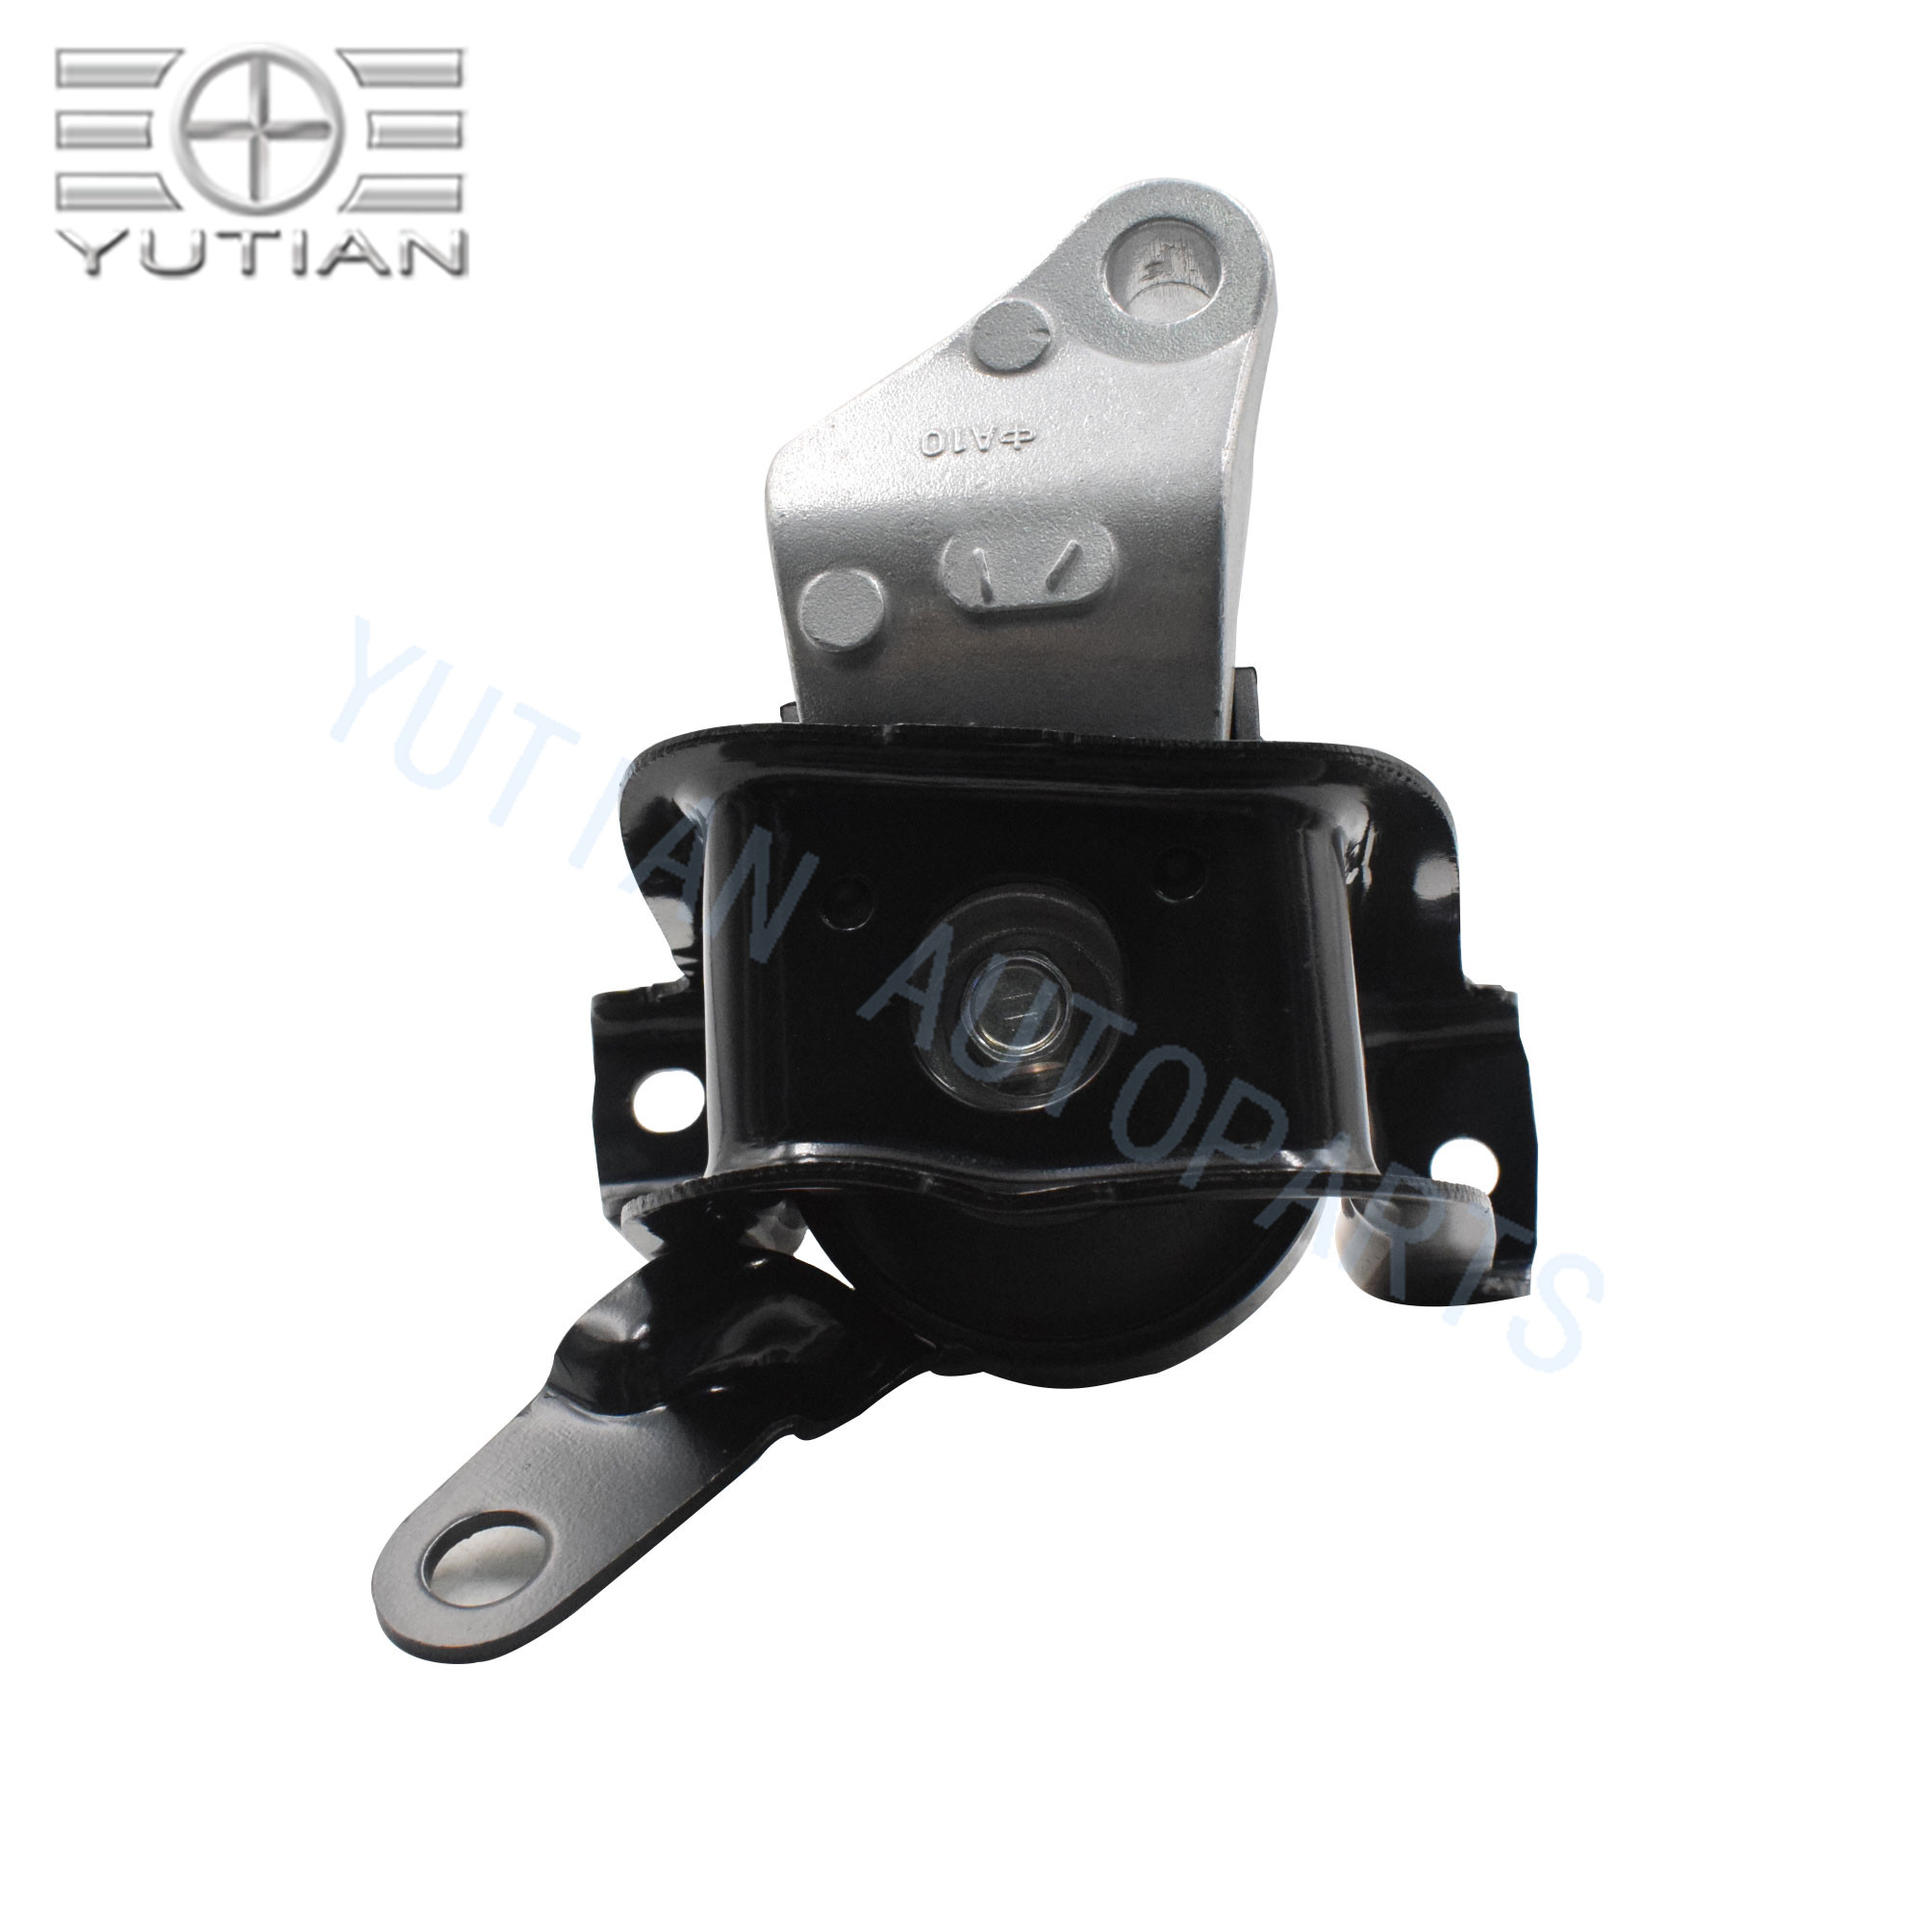 For Toyota 2004-2007 Corolla ZZE122 1.8 AT/MT Right Engine Mount Bracket OEM 12305-22240